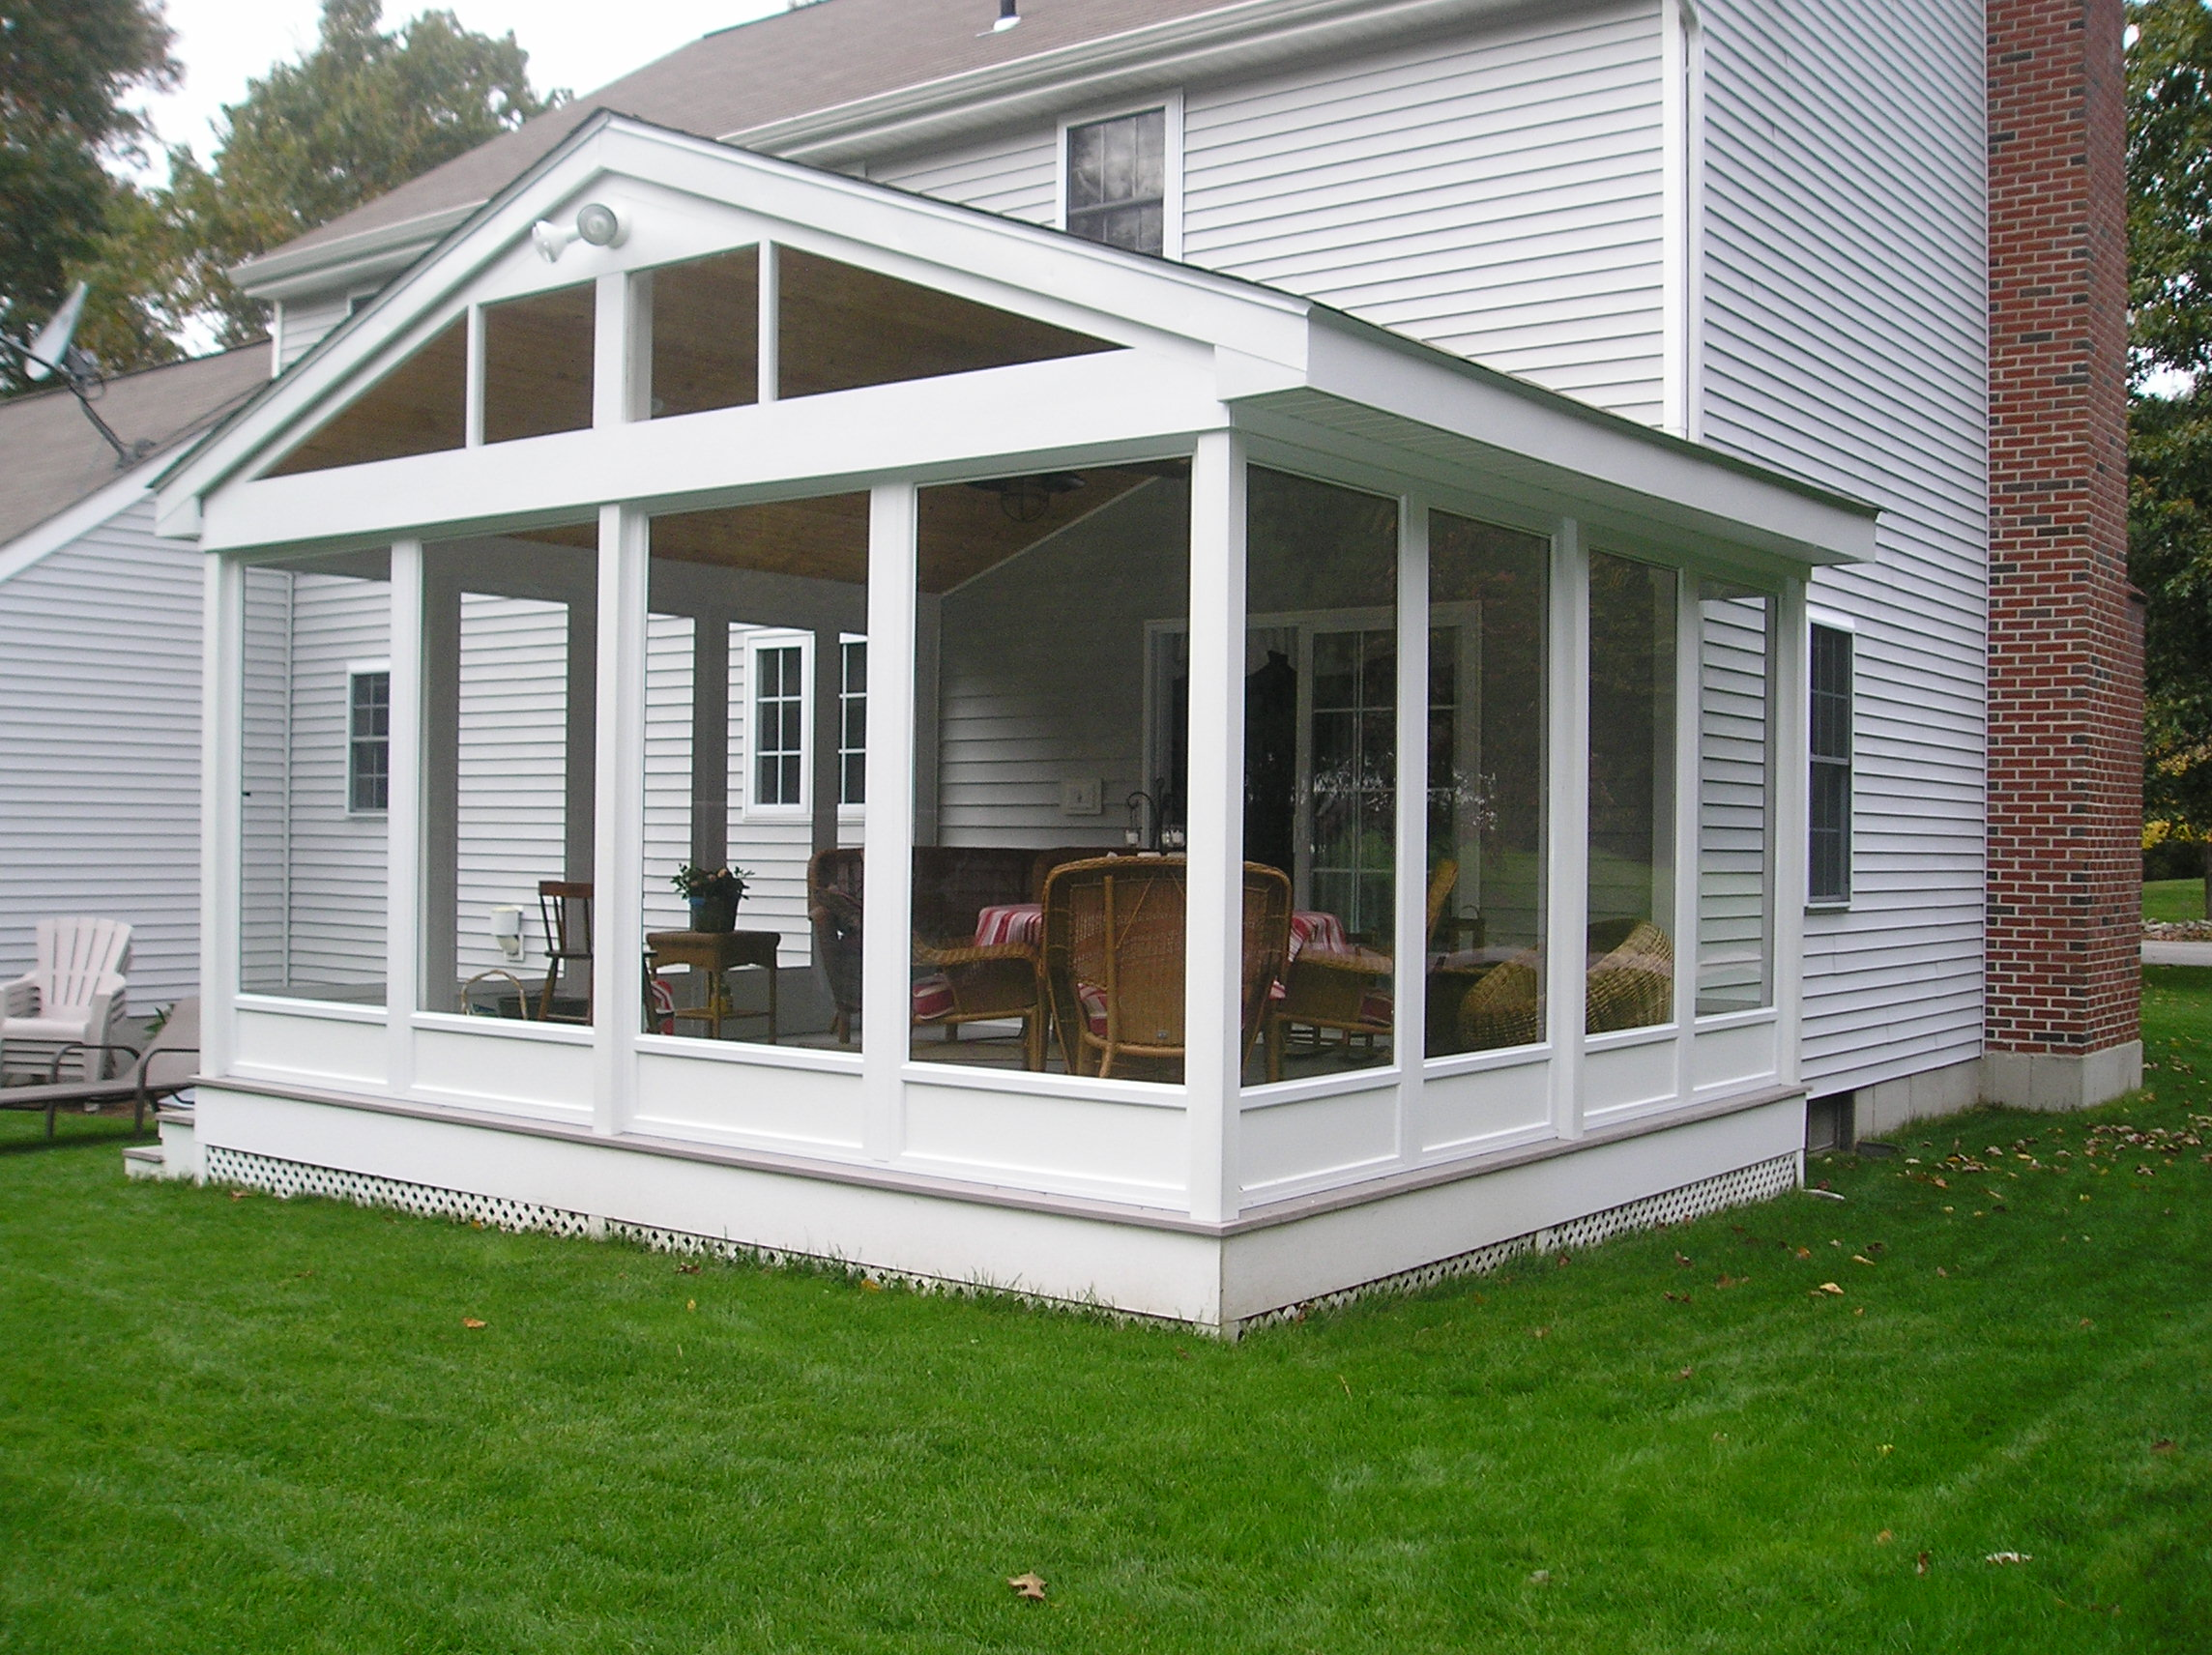 enjoy a new sunroom free of mosquitos allen remodeling